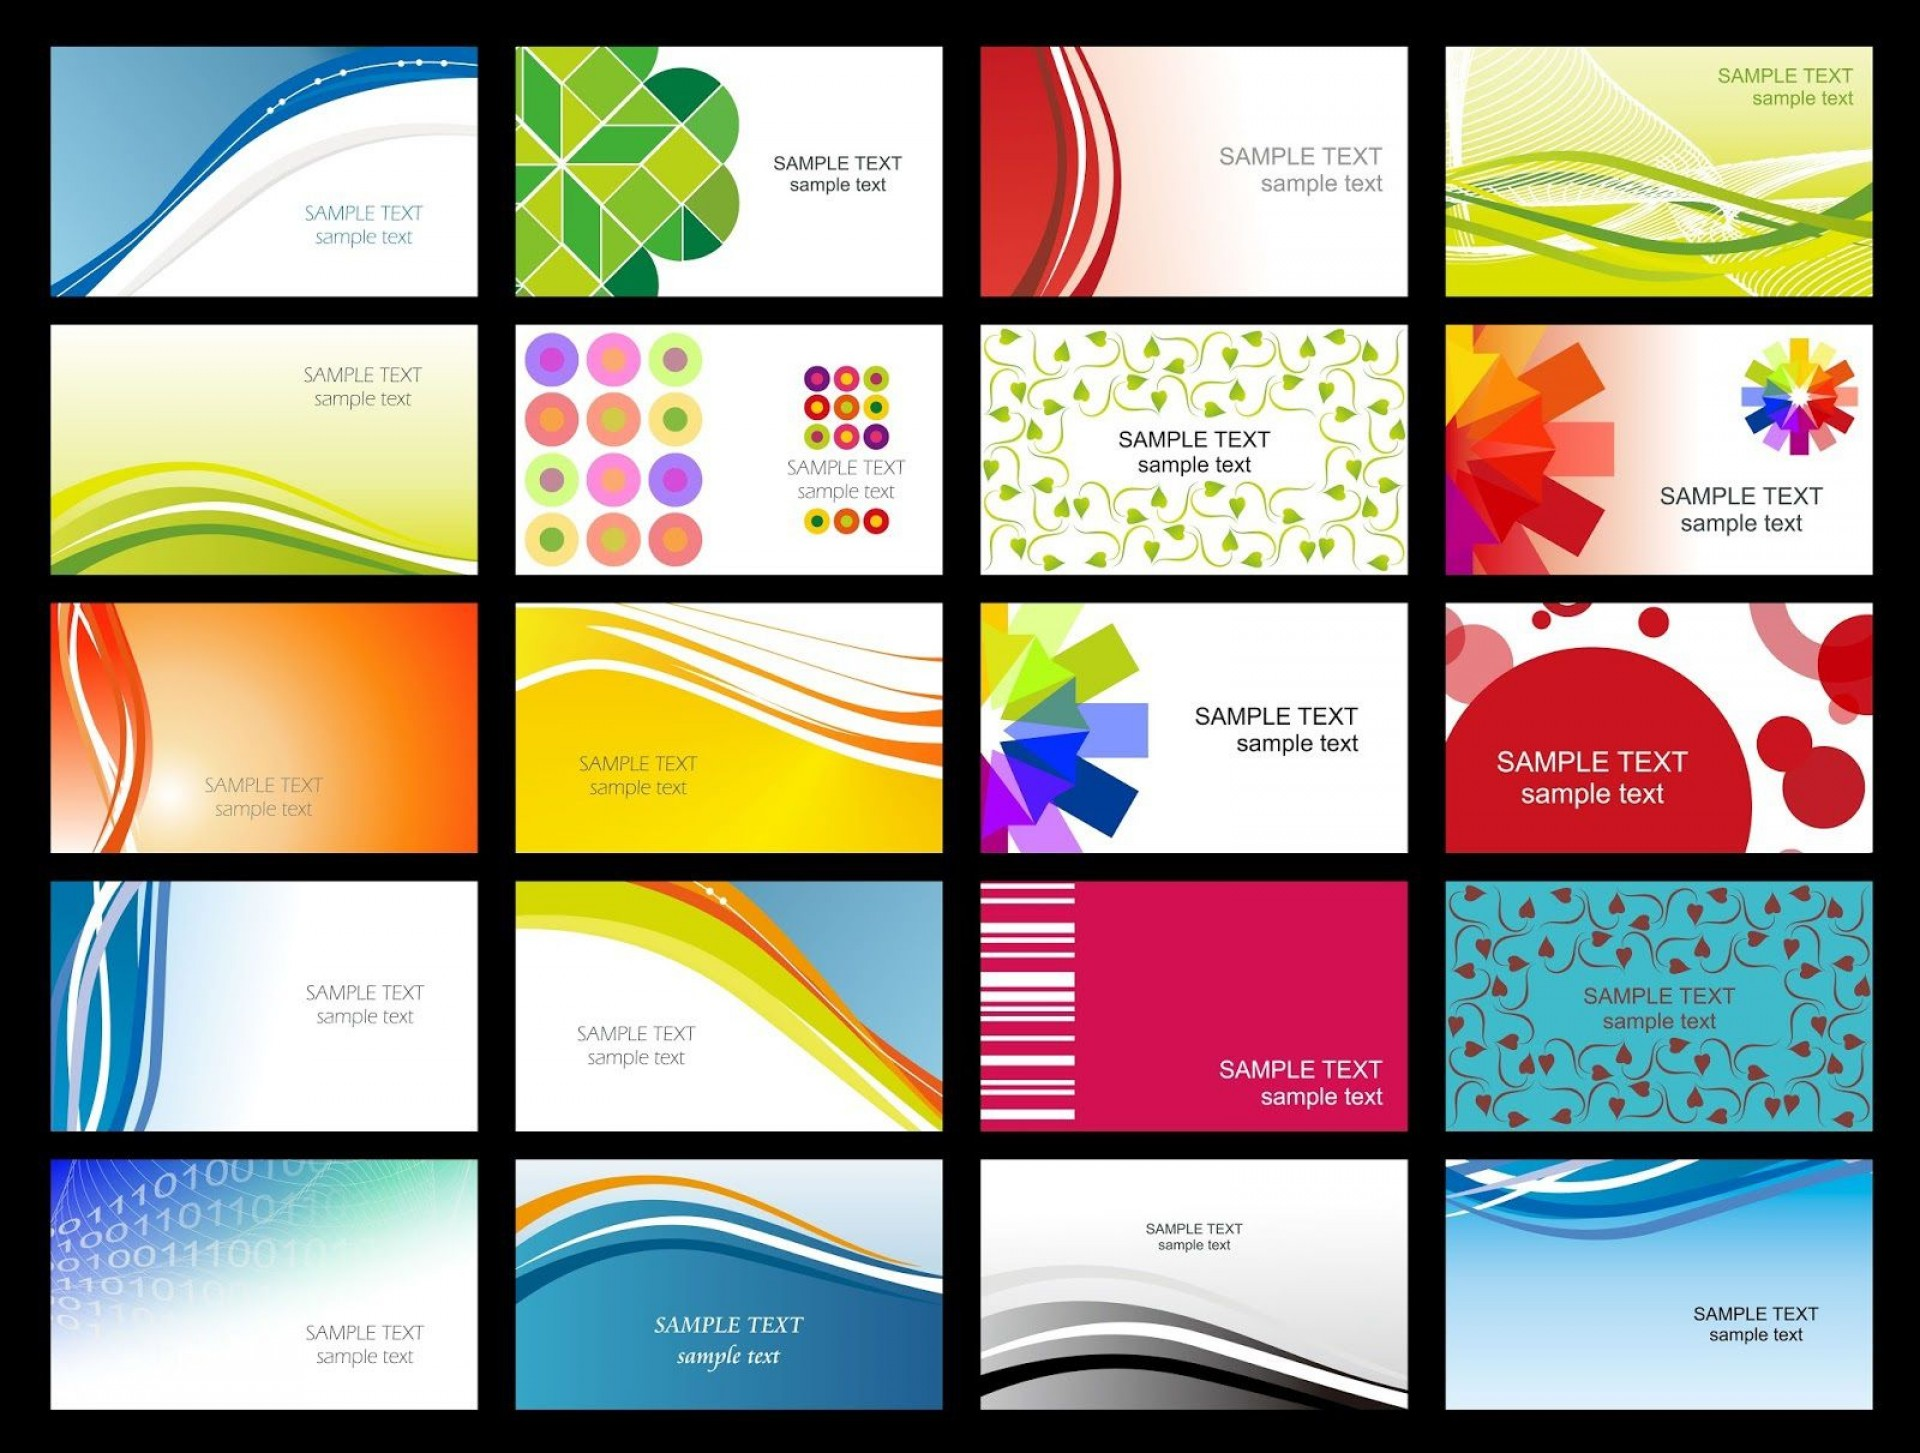 009 Excellent Simple Busines Card Template Microsoft Word Picture 1920